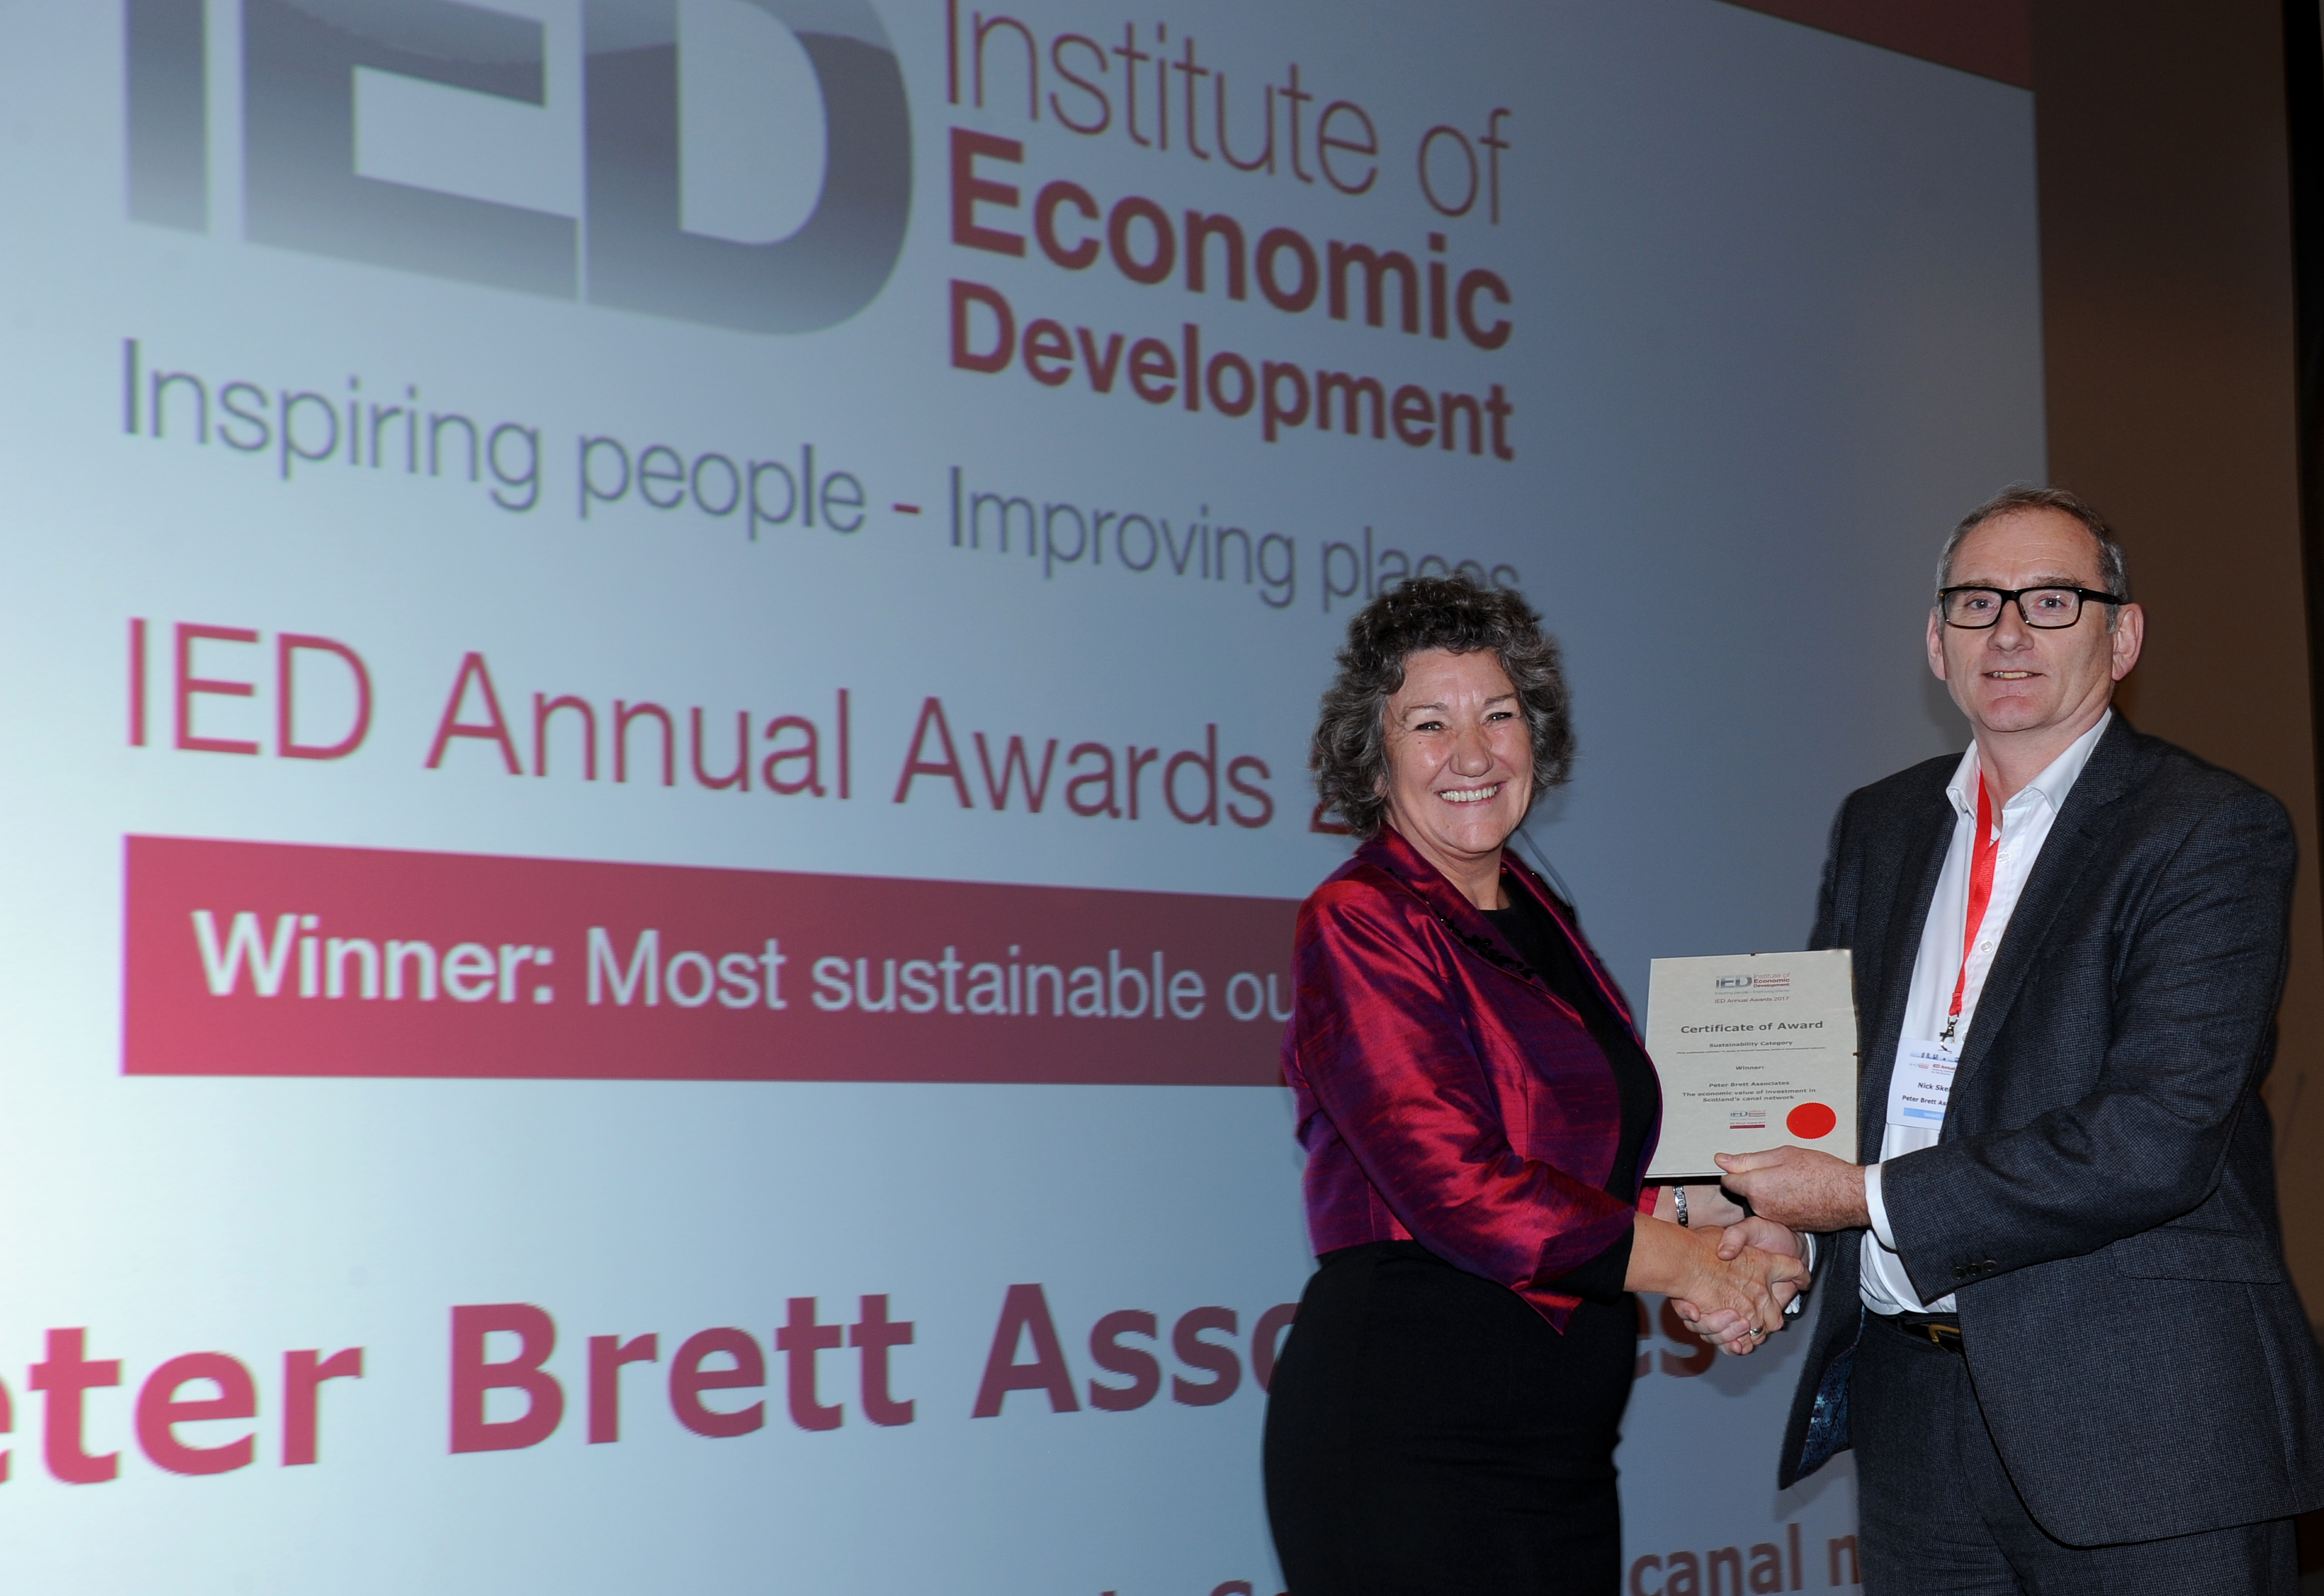 ied annual awards 2018 full details announced ied institute of